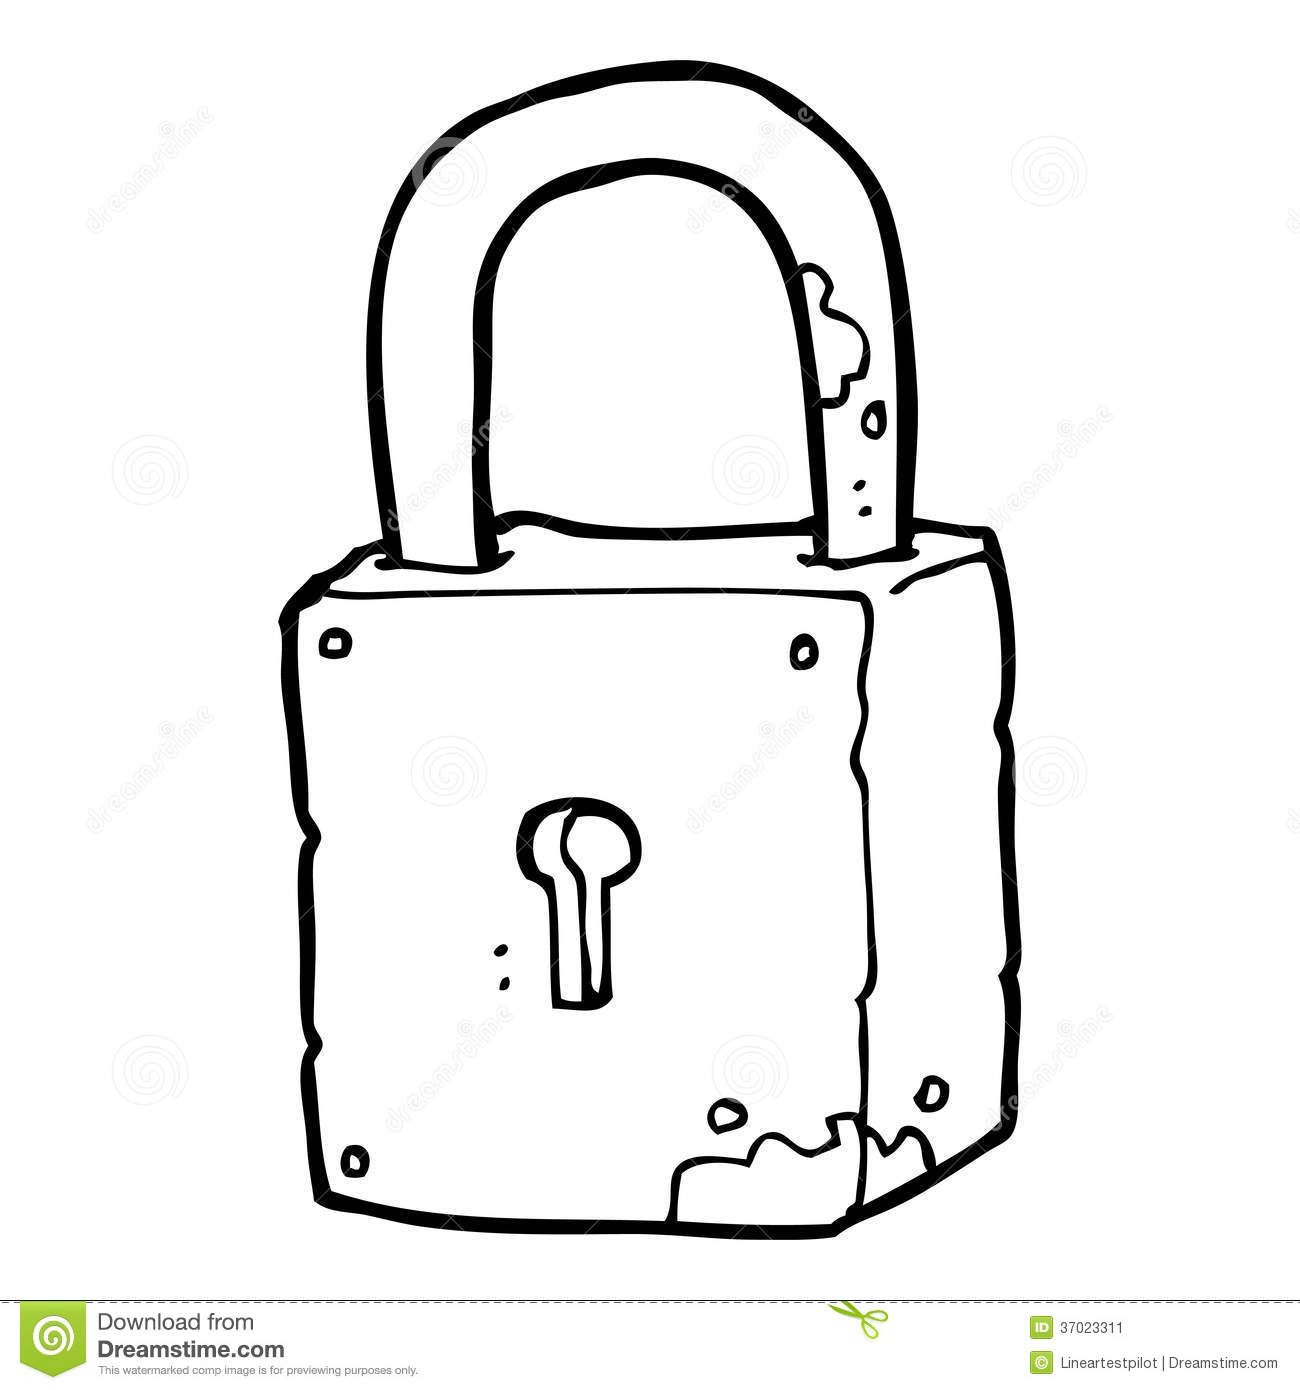 Cartoon rusty lock stock illustration. Illustration of